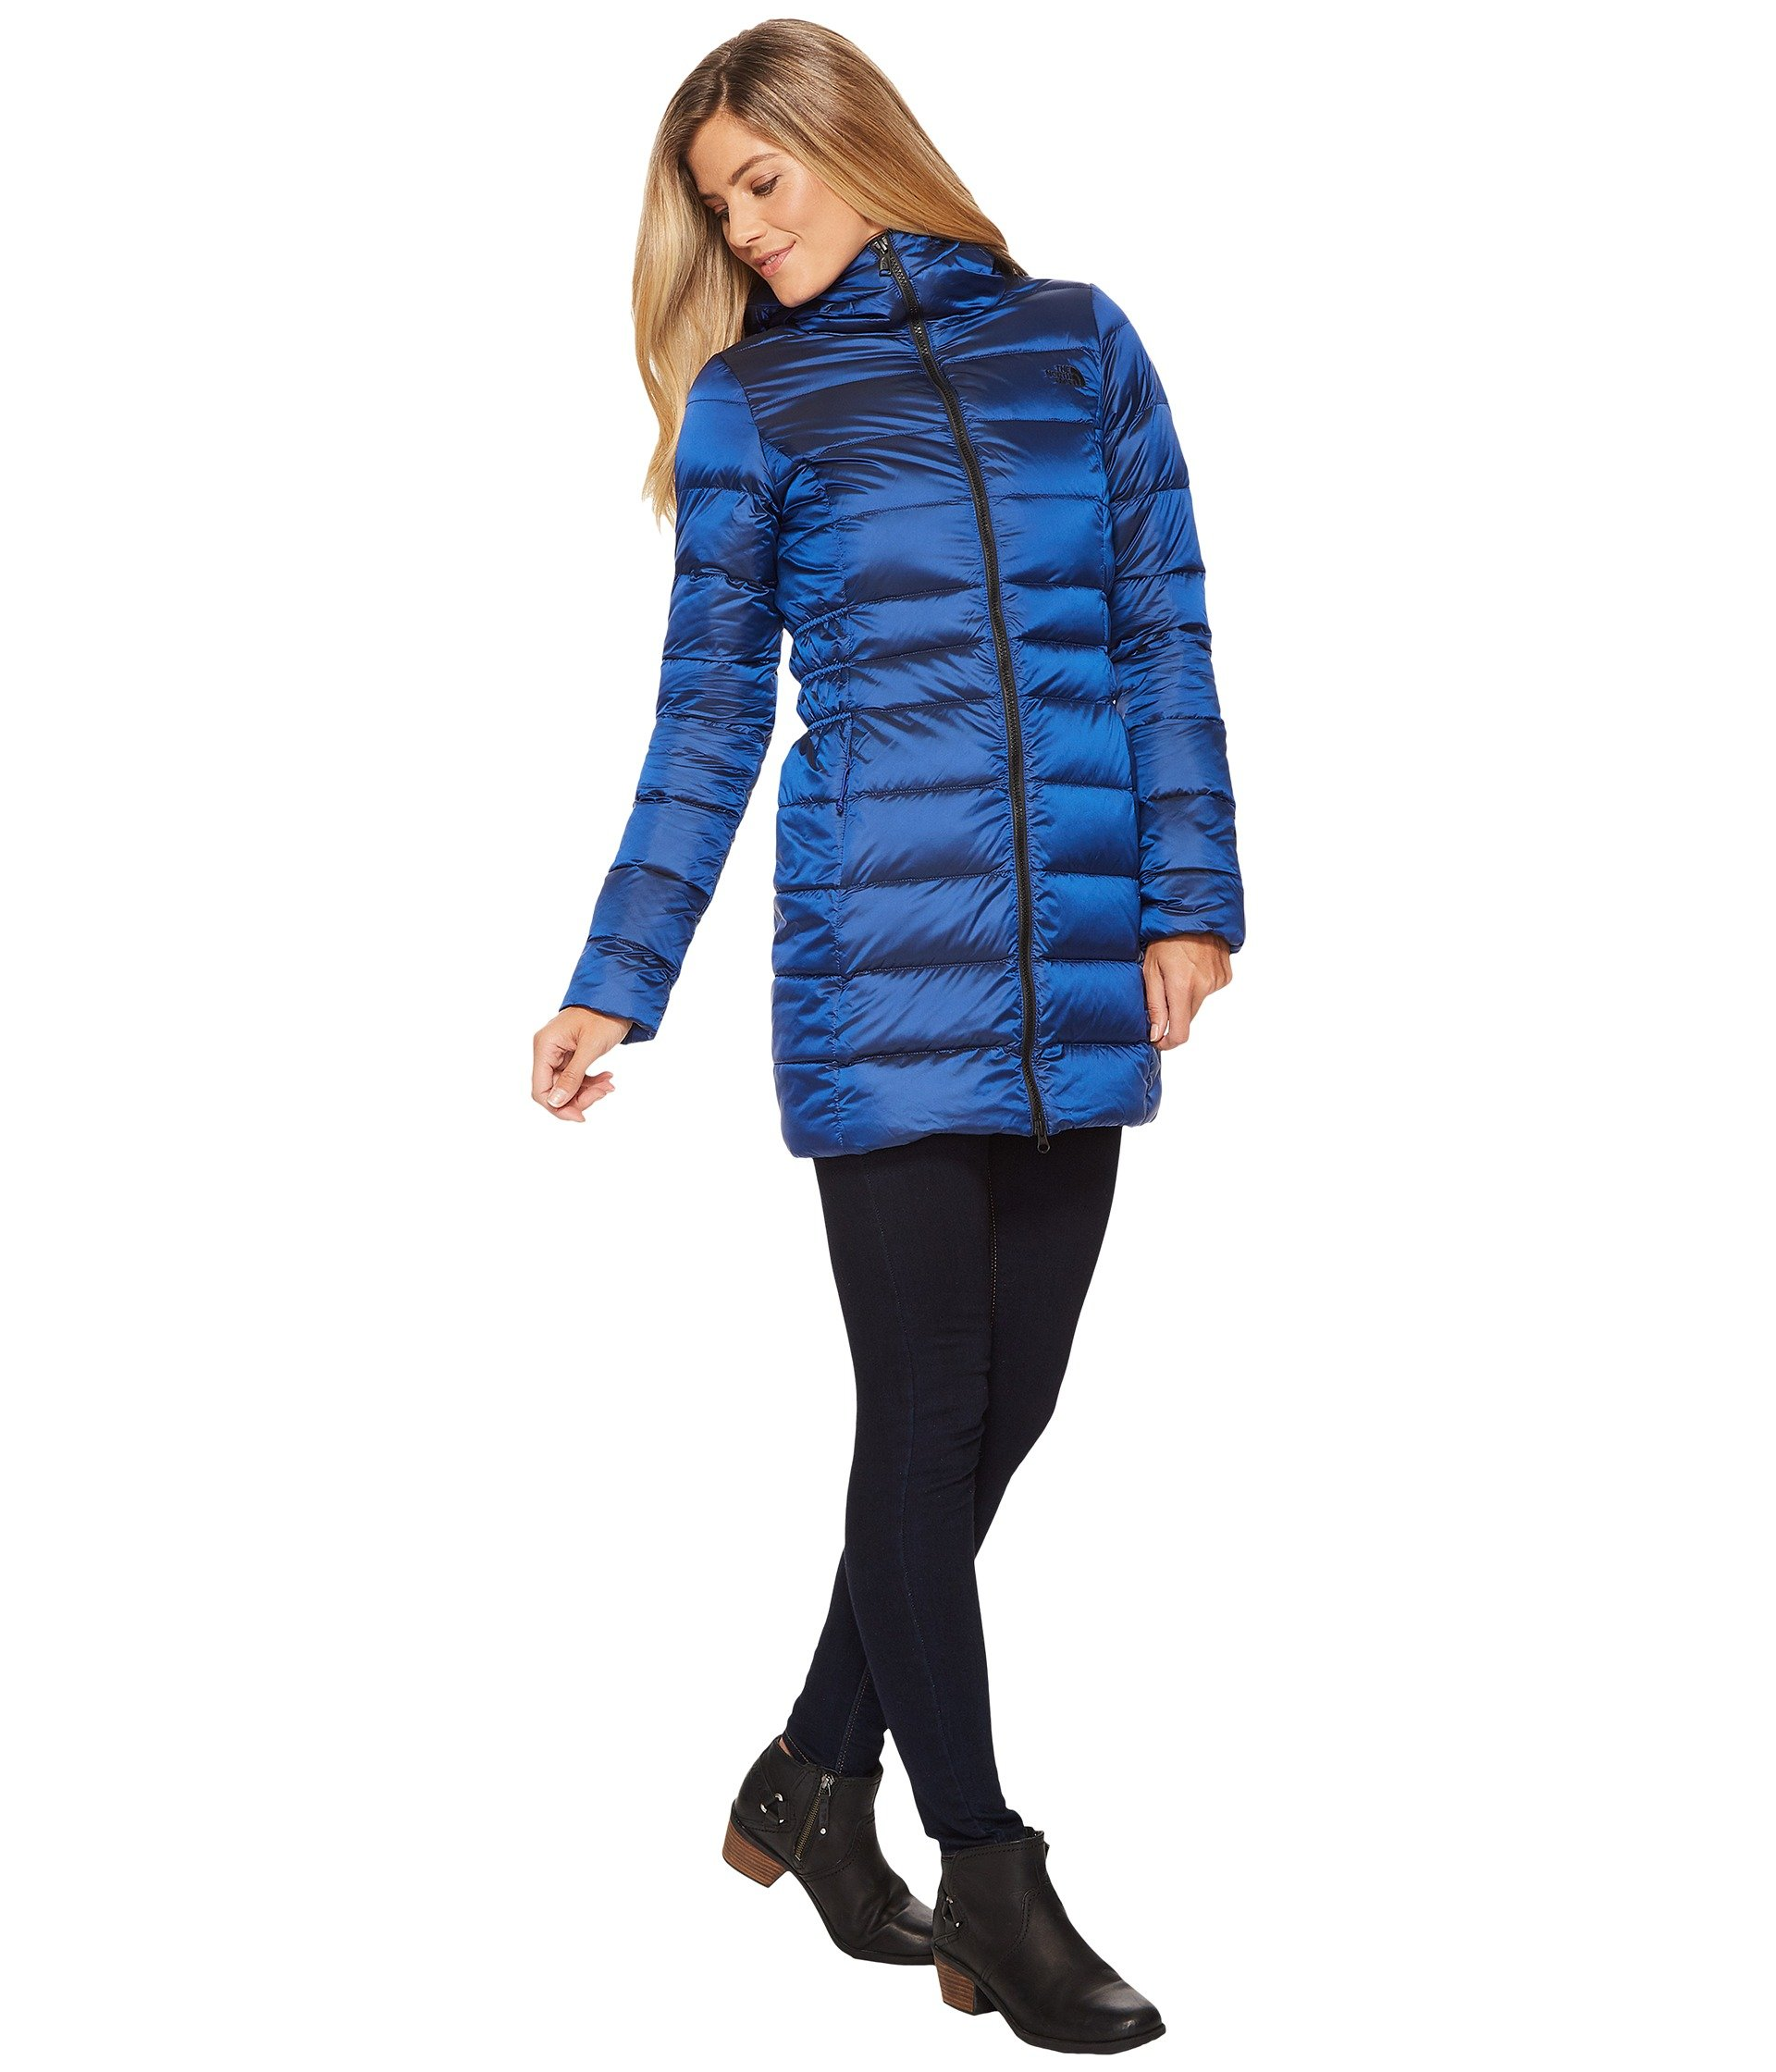 north face gotham parka review